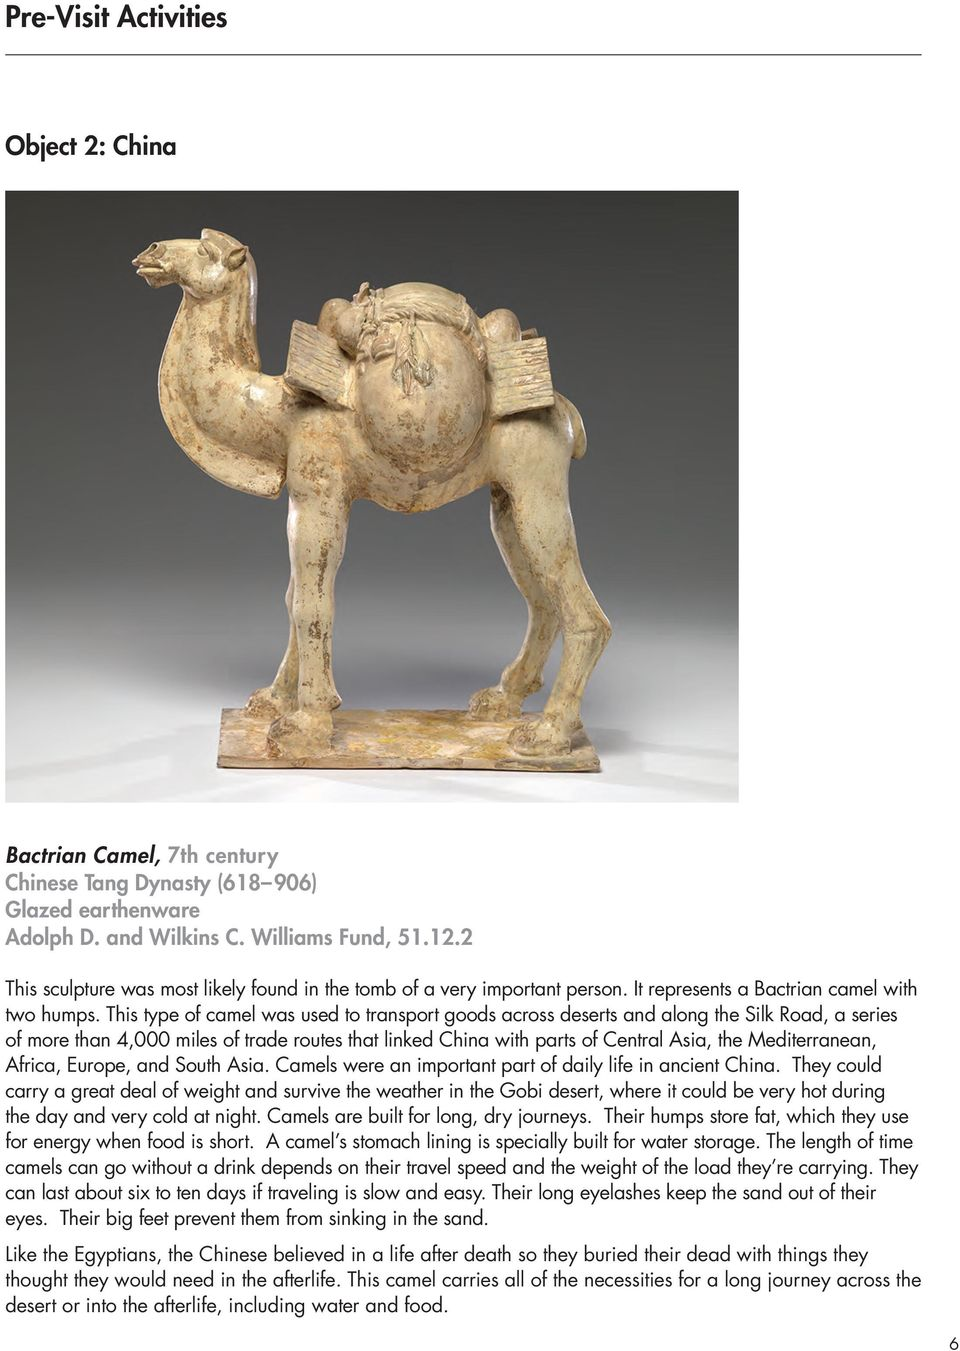 This type of camel was used to transport goods across deserts and along the Silk Road, a series of more than 4,000 miles of trade routes that linked China with parts of Central Asia, the